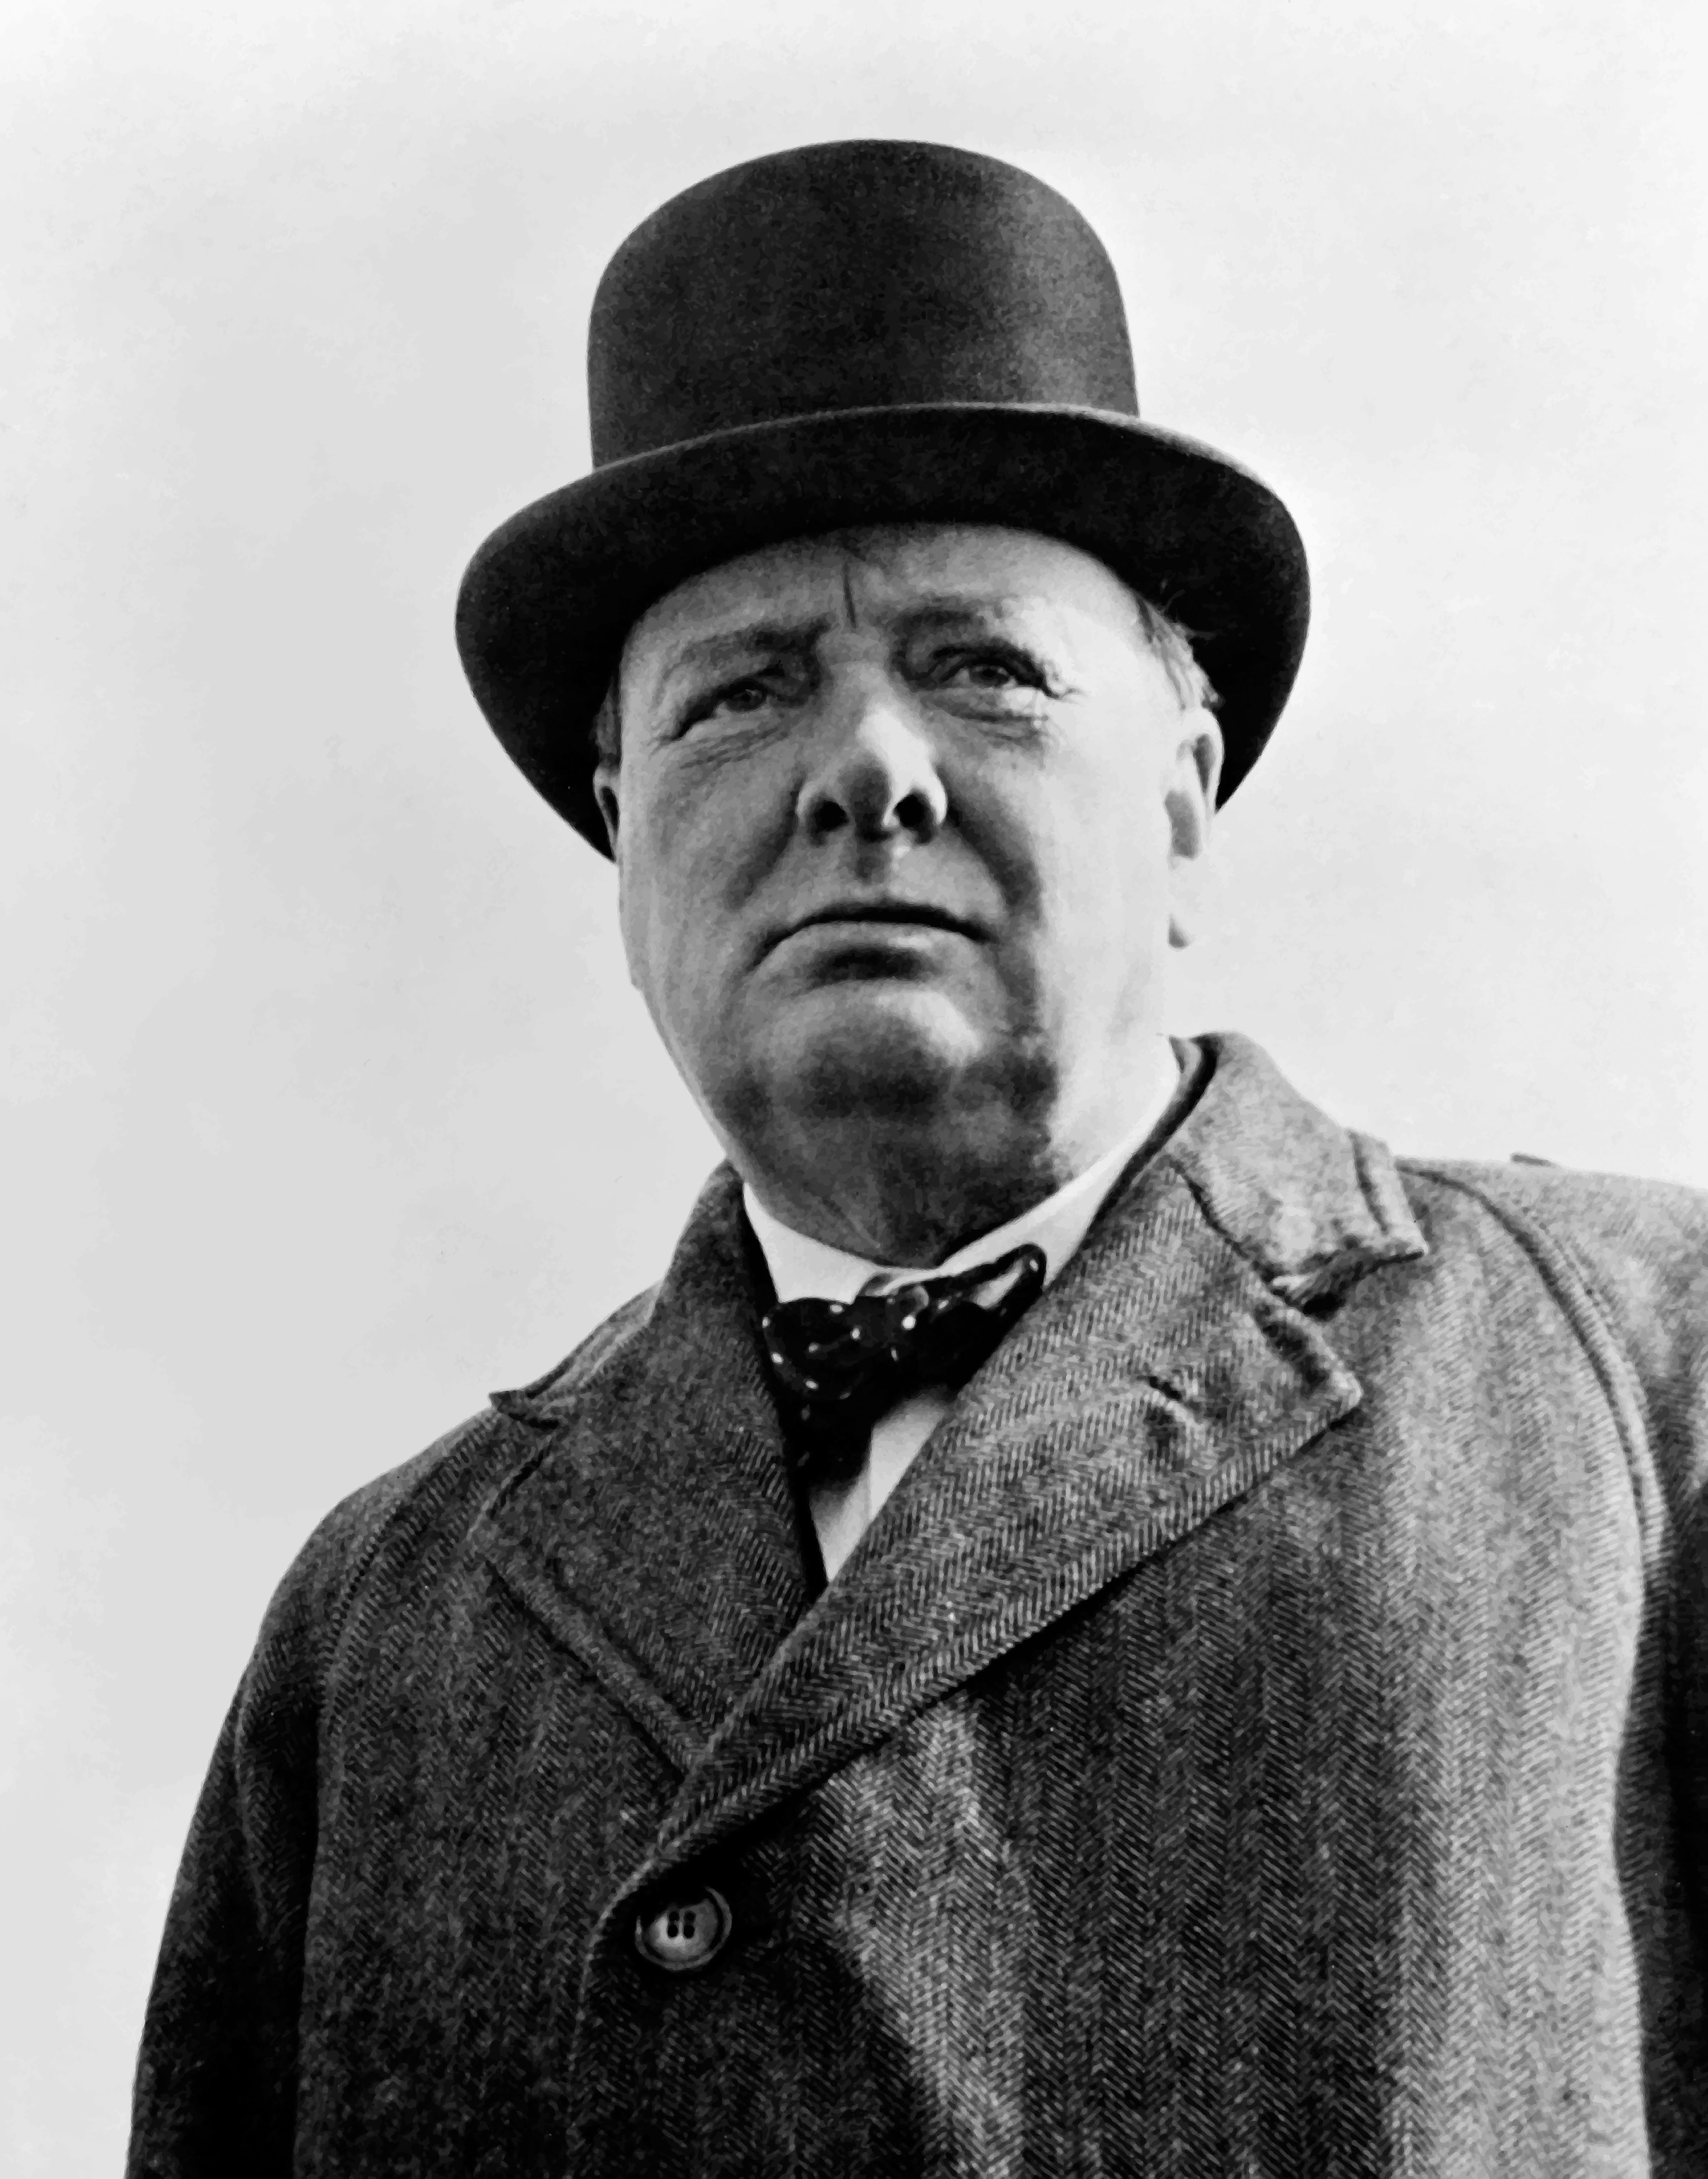 Sir Winston Churchill died on 24th January 1965